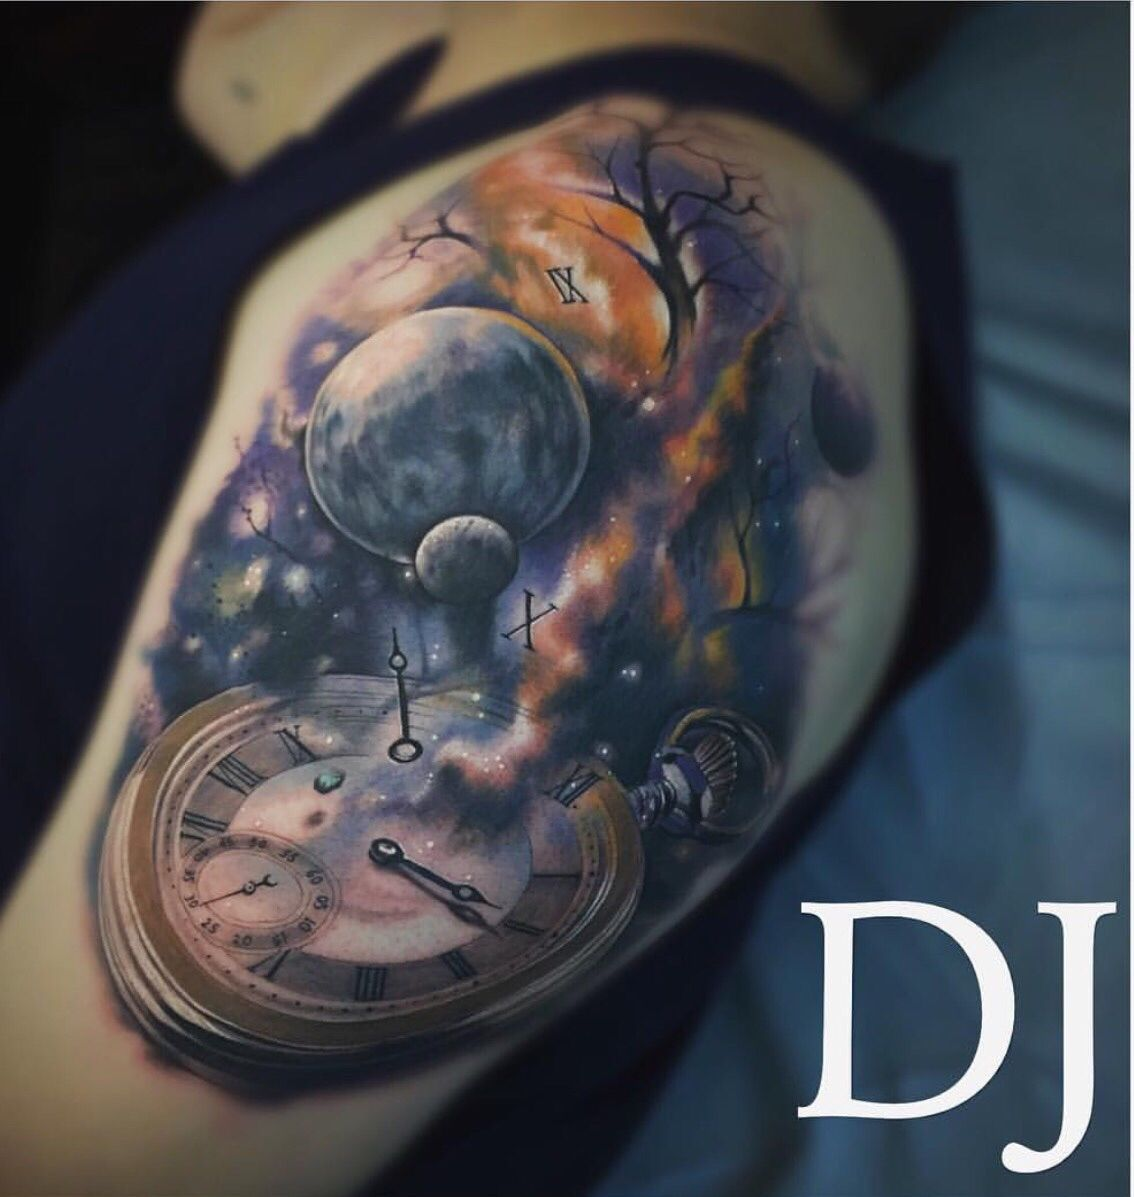 Time melting into space by dj tambe bad apple tattoo in las vegas time melting into space by dj tambe bad apple tattoo in las vegas imgur buycottarizona Images